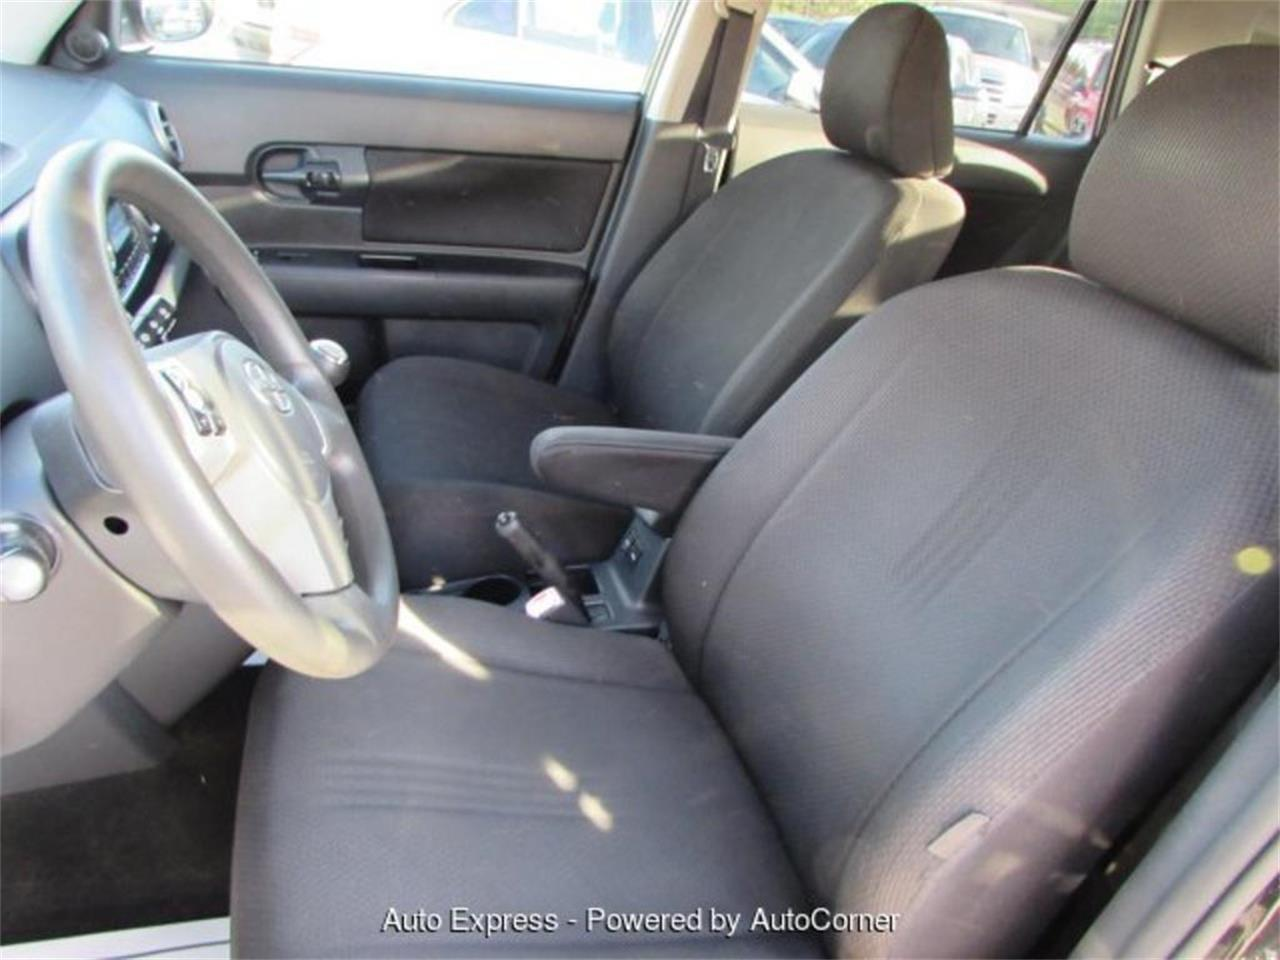 2008 Scion Xb for sale in Orlando, FL – photo 6